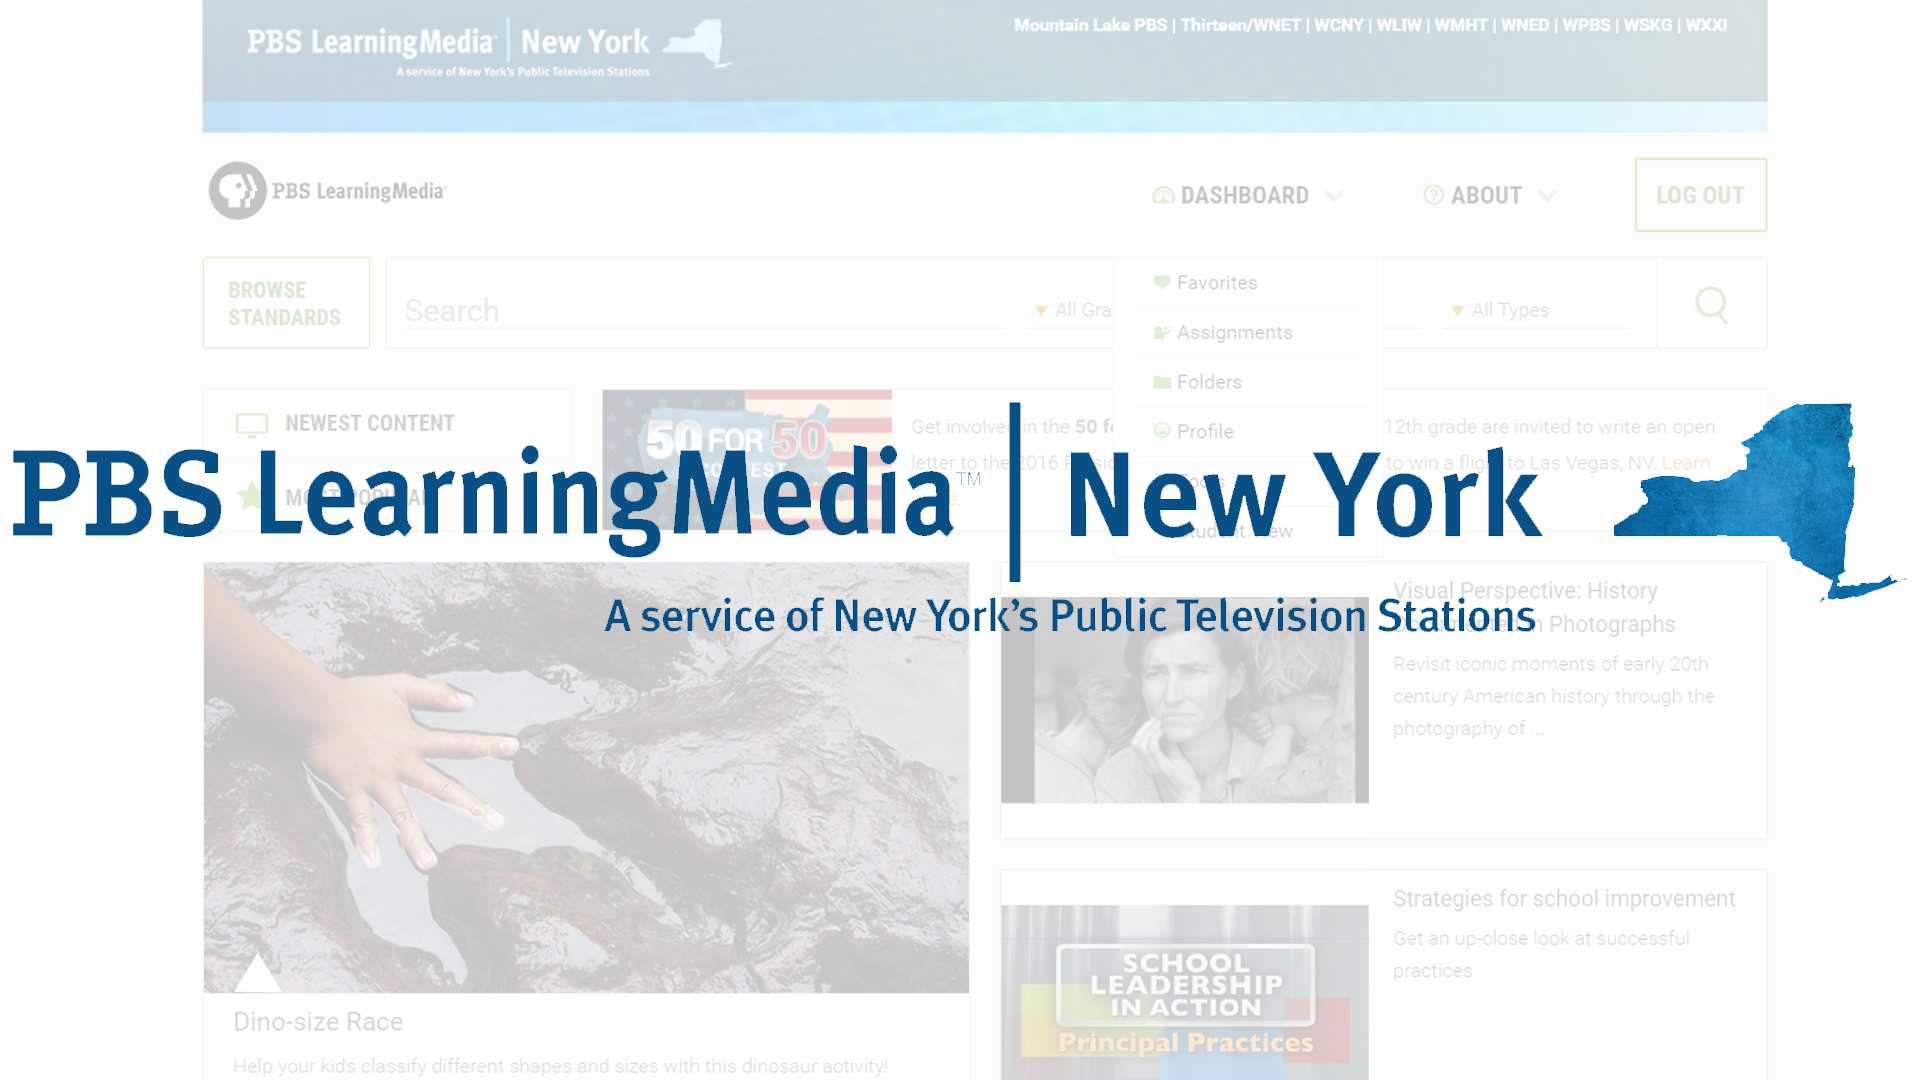 PBS LearningMedia New York